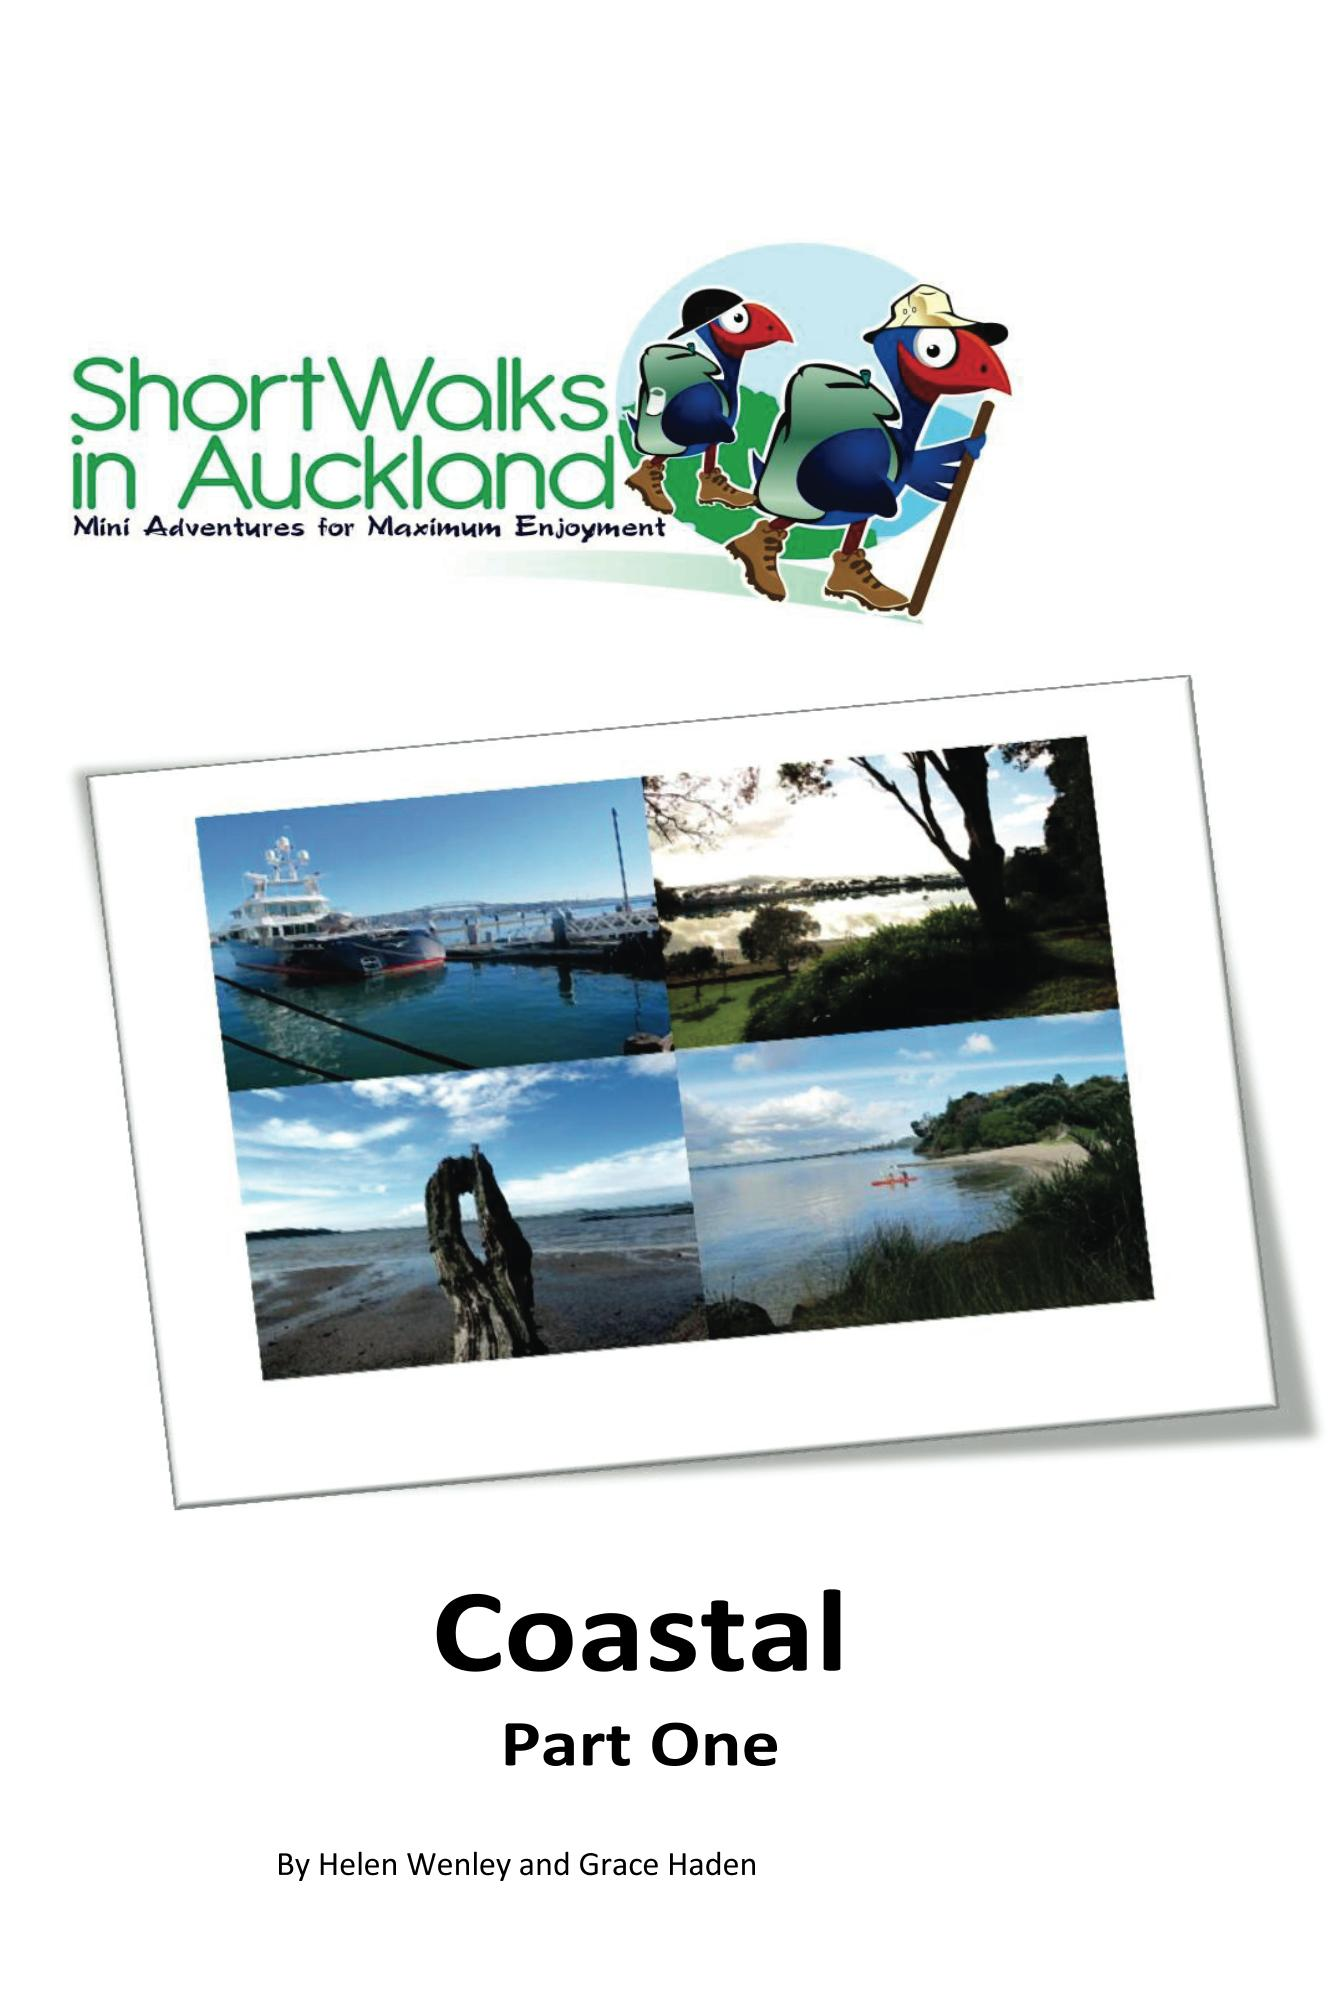 coastal walks (part one) in Auckland